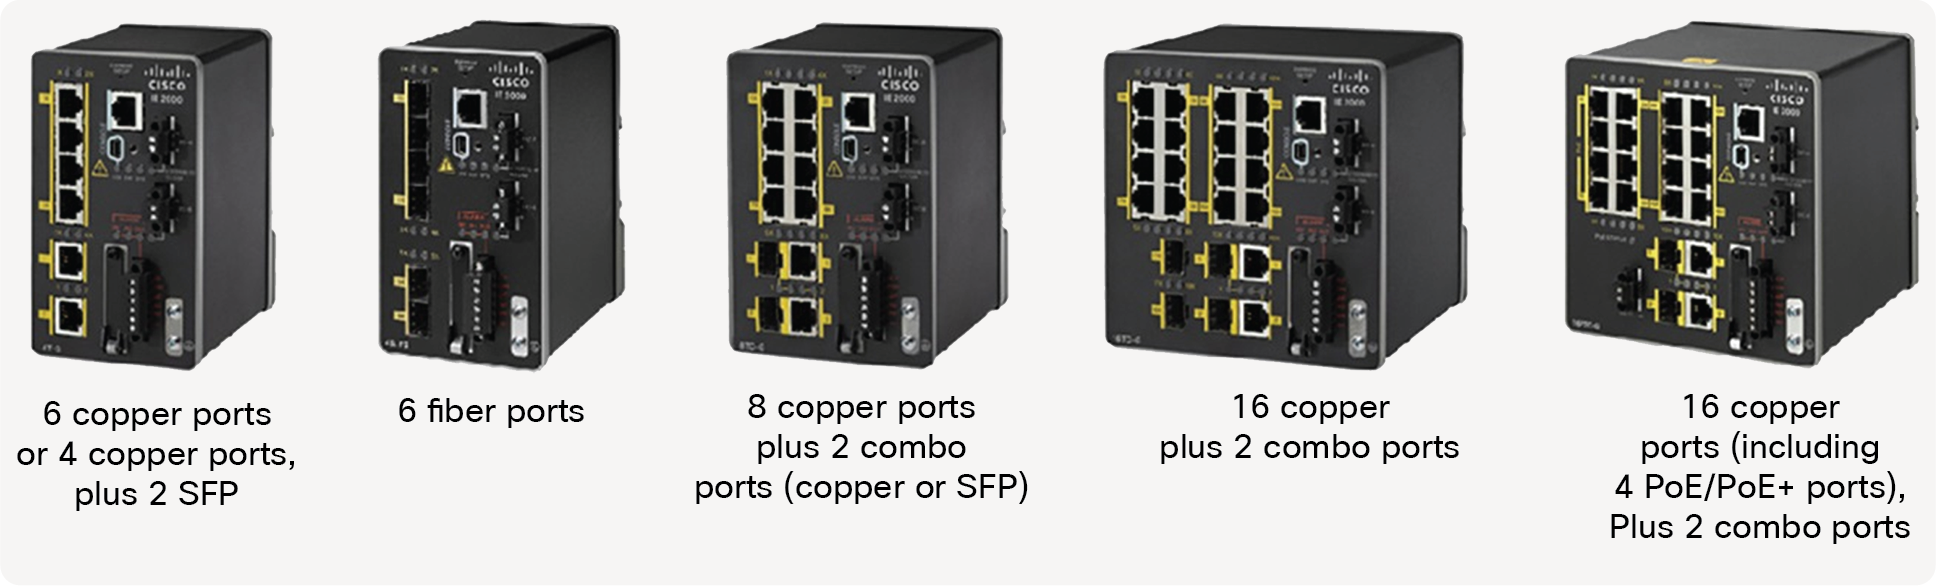 Title: Cisco Industrial Ethernet 2000 Series Switches - Description: